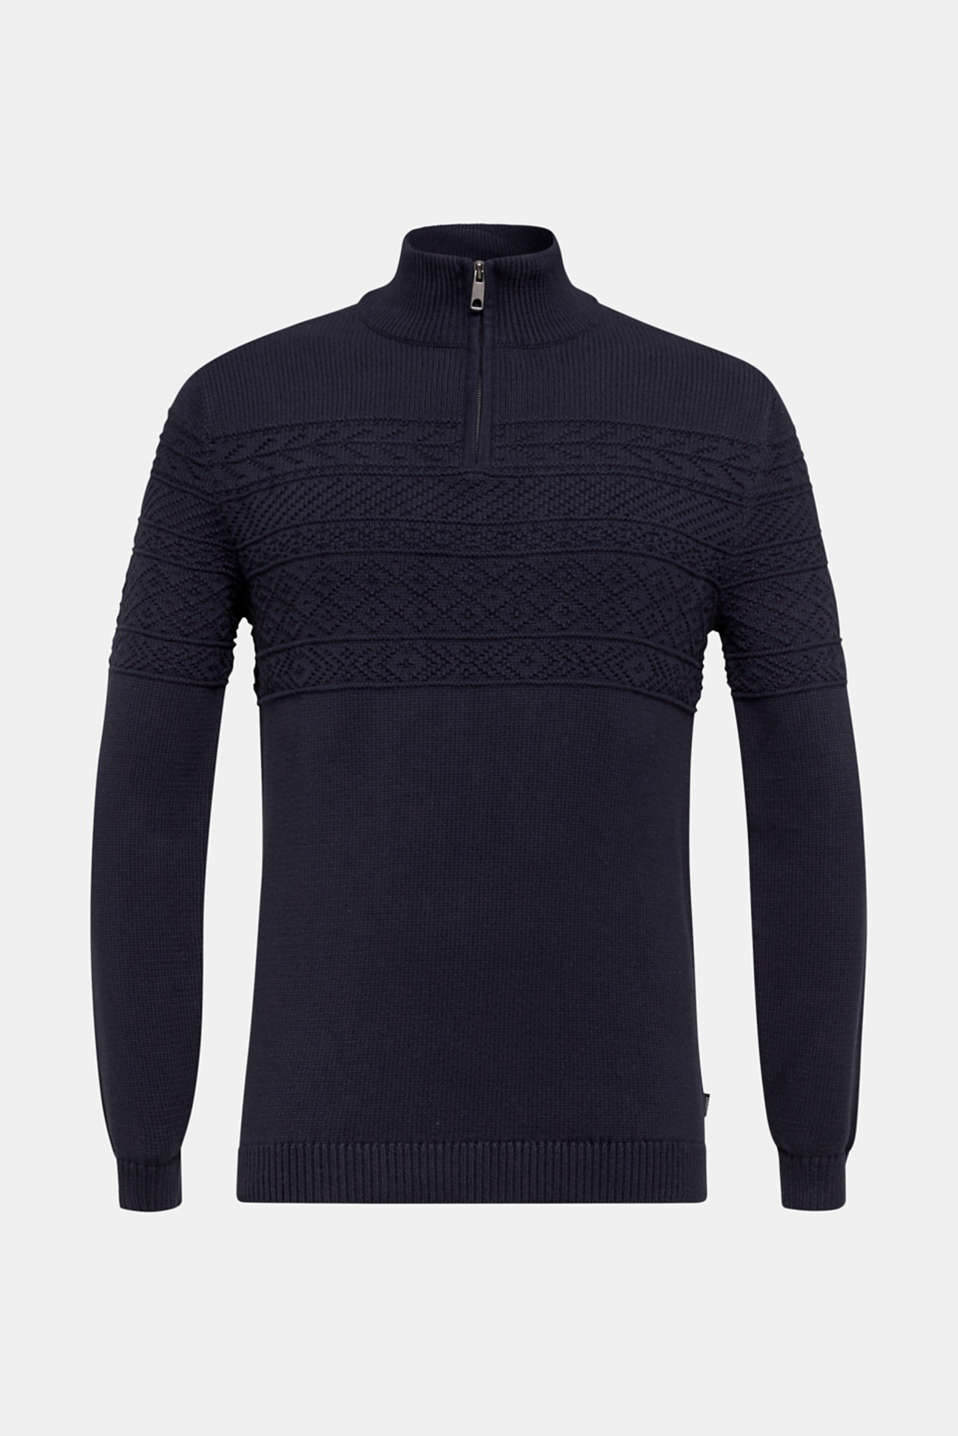 Textured knit troyer jumper in 100% cotton, NAVY, detail image number 6